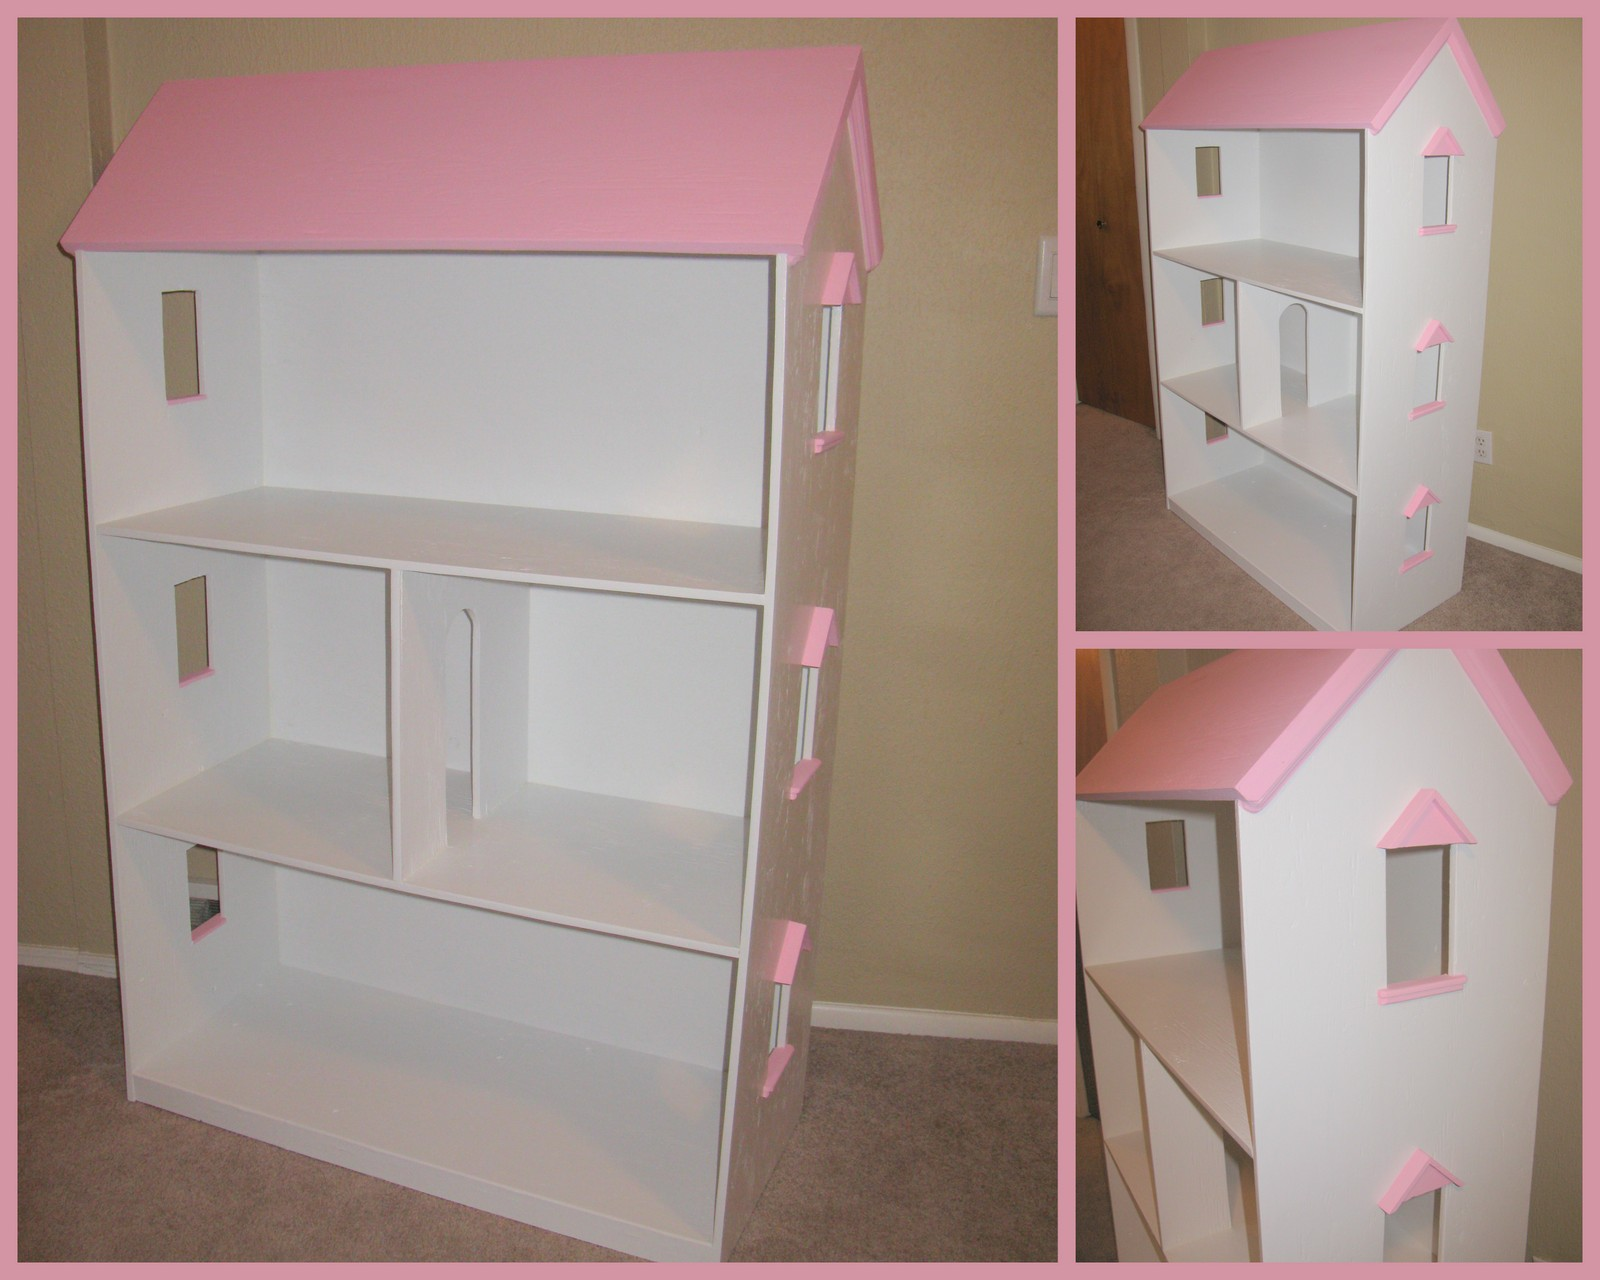 How to make a house for Barbie